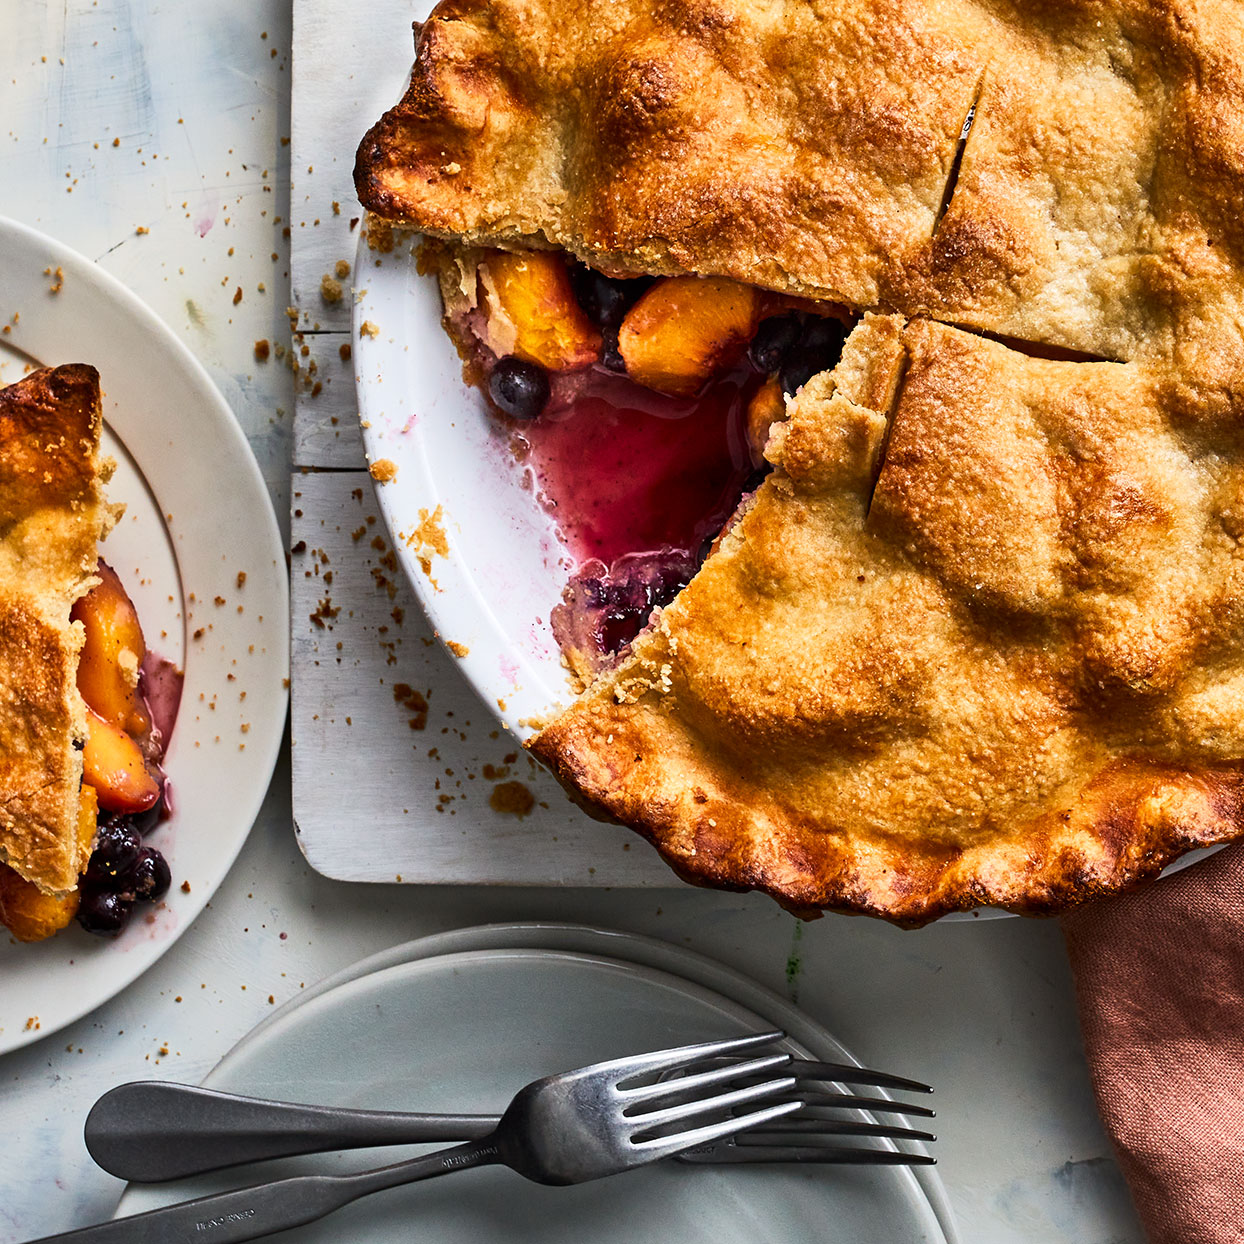 Peach-Blueberry Pie Trusted Brands